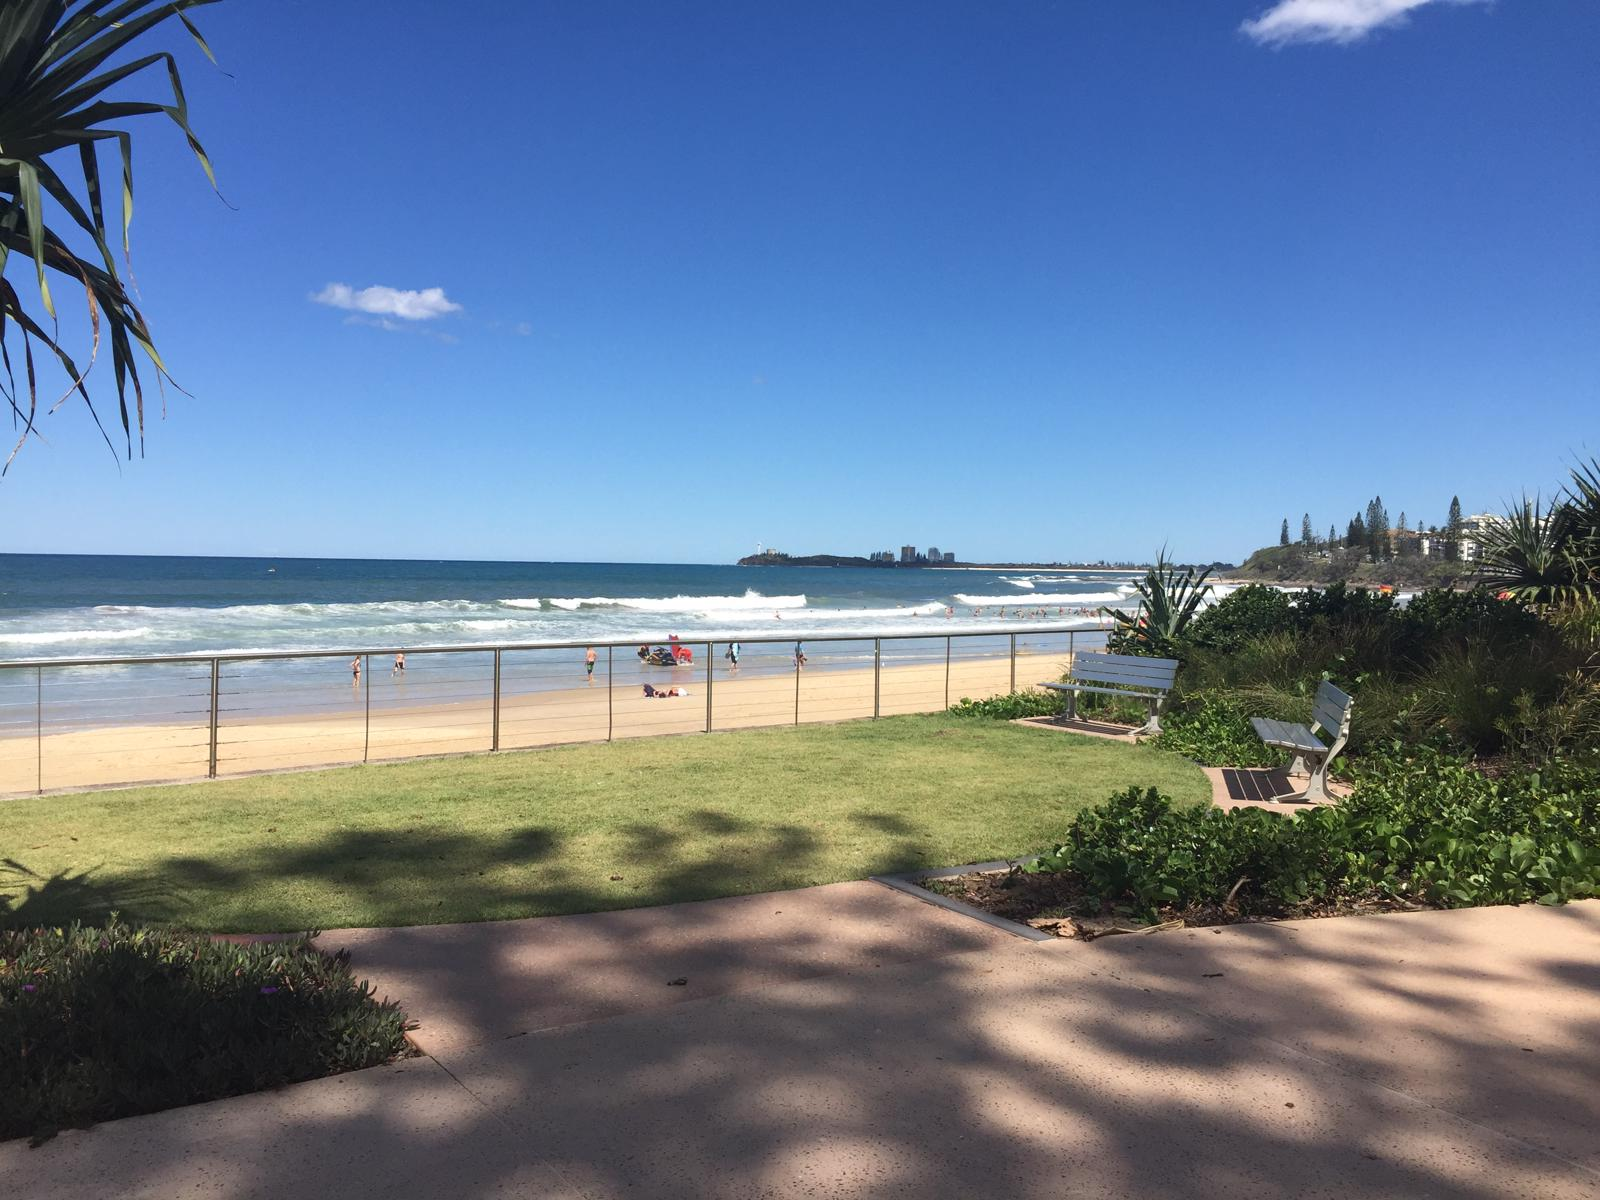 Trail Image for Road Cycle Route: Maroochydore Flat Road Loop